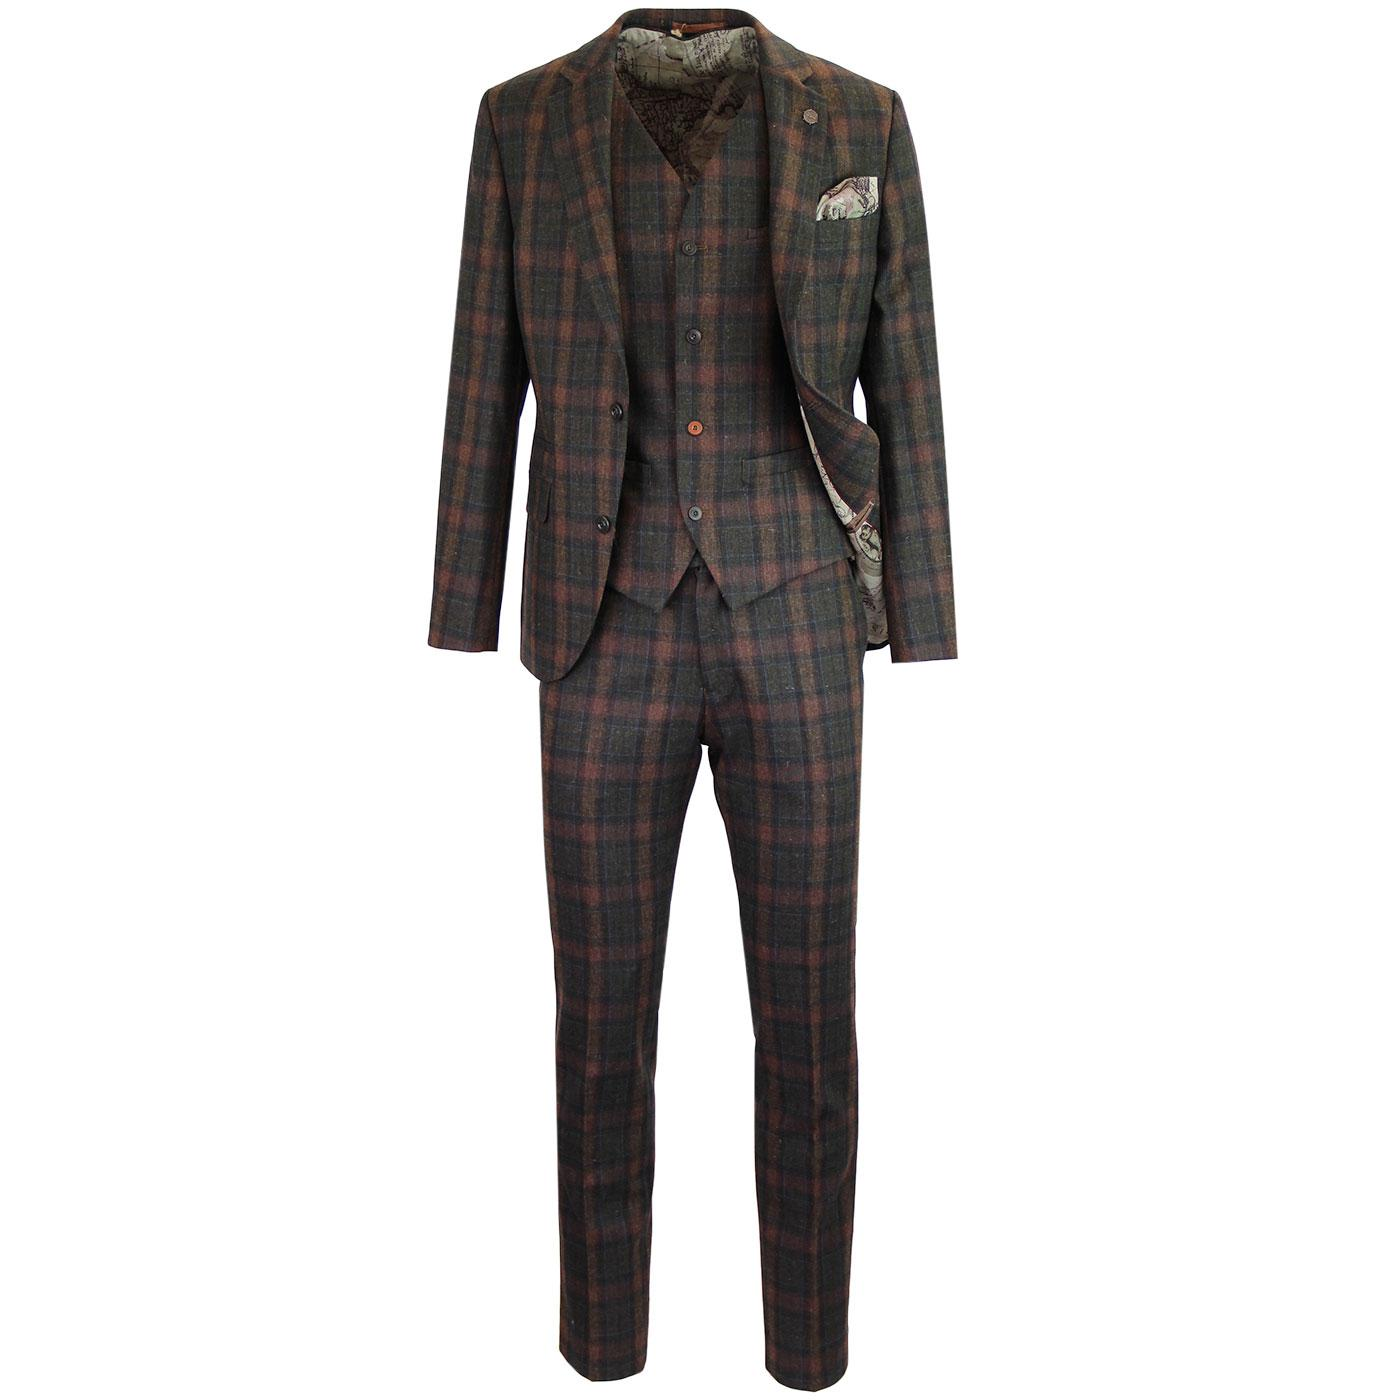 GIBSON LONDON Mod Tartan Check 2 or 3 Piece Suit